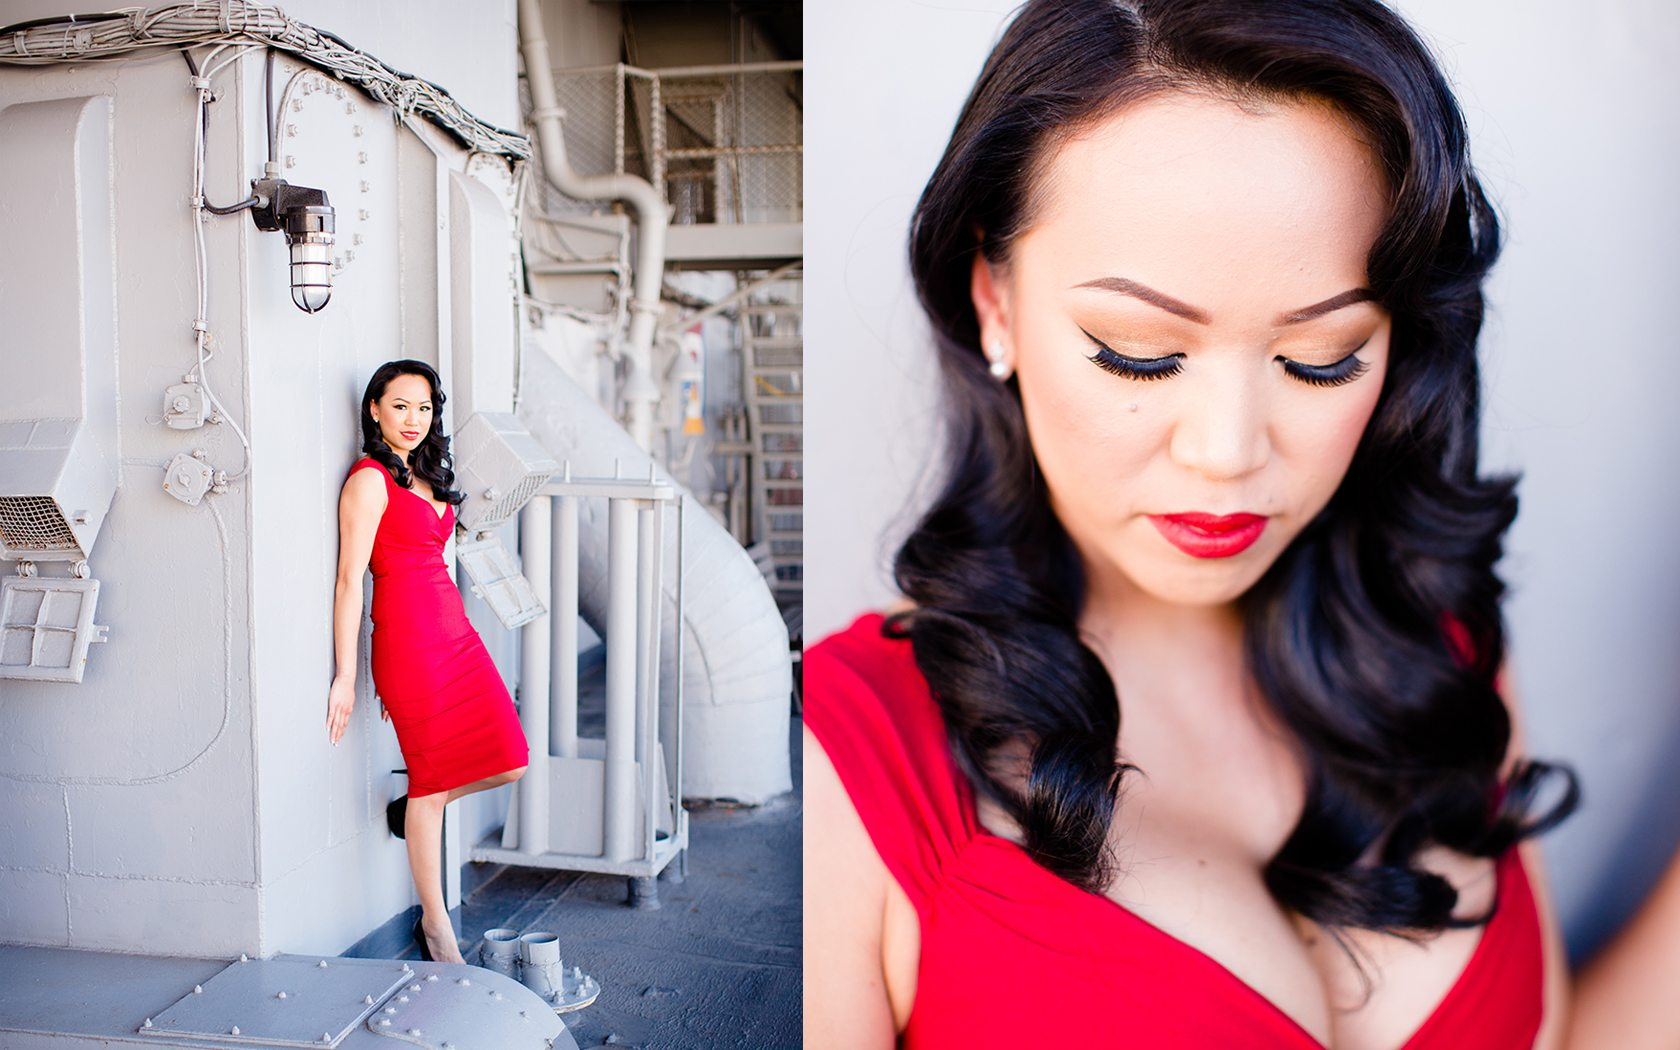 USS_Midway_Engagement_Session_22.jpg